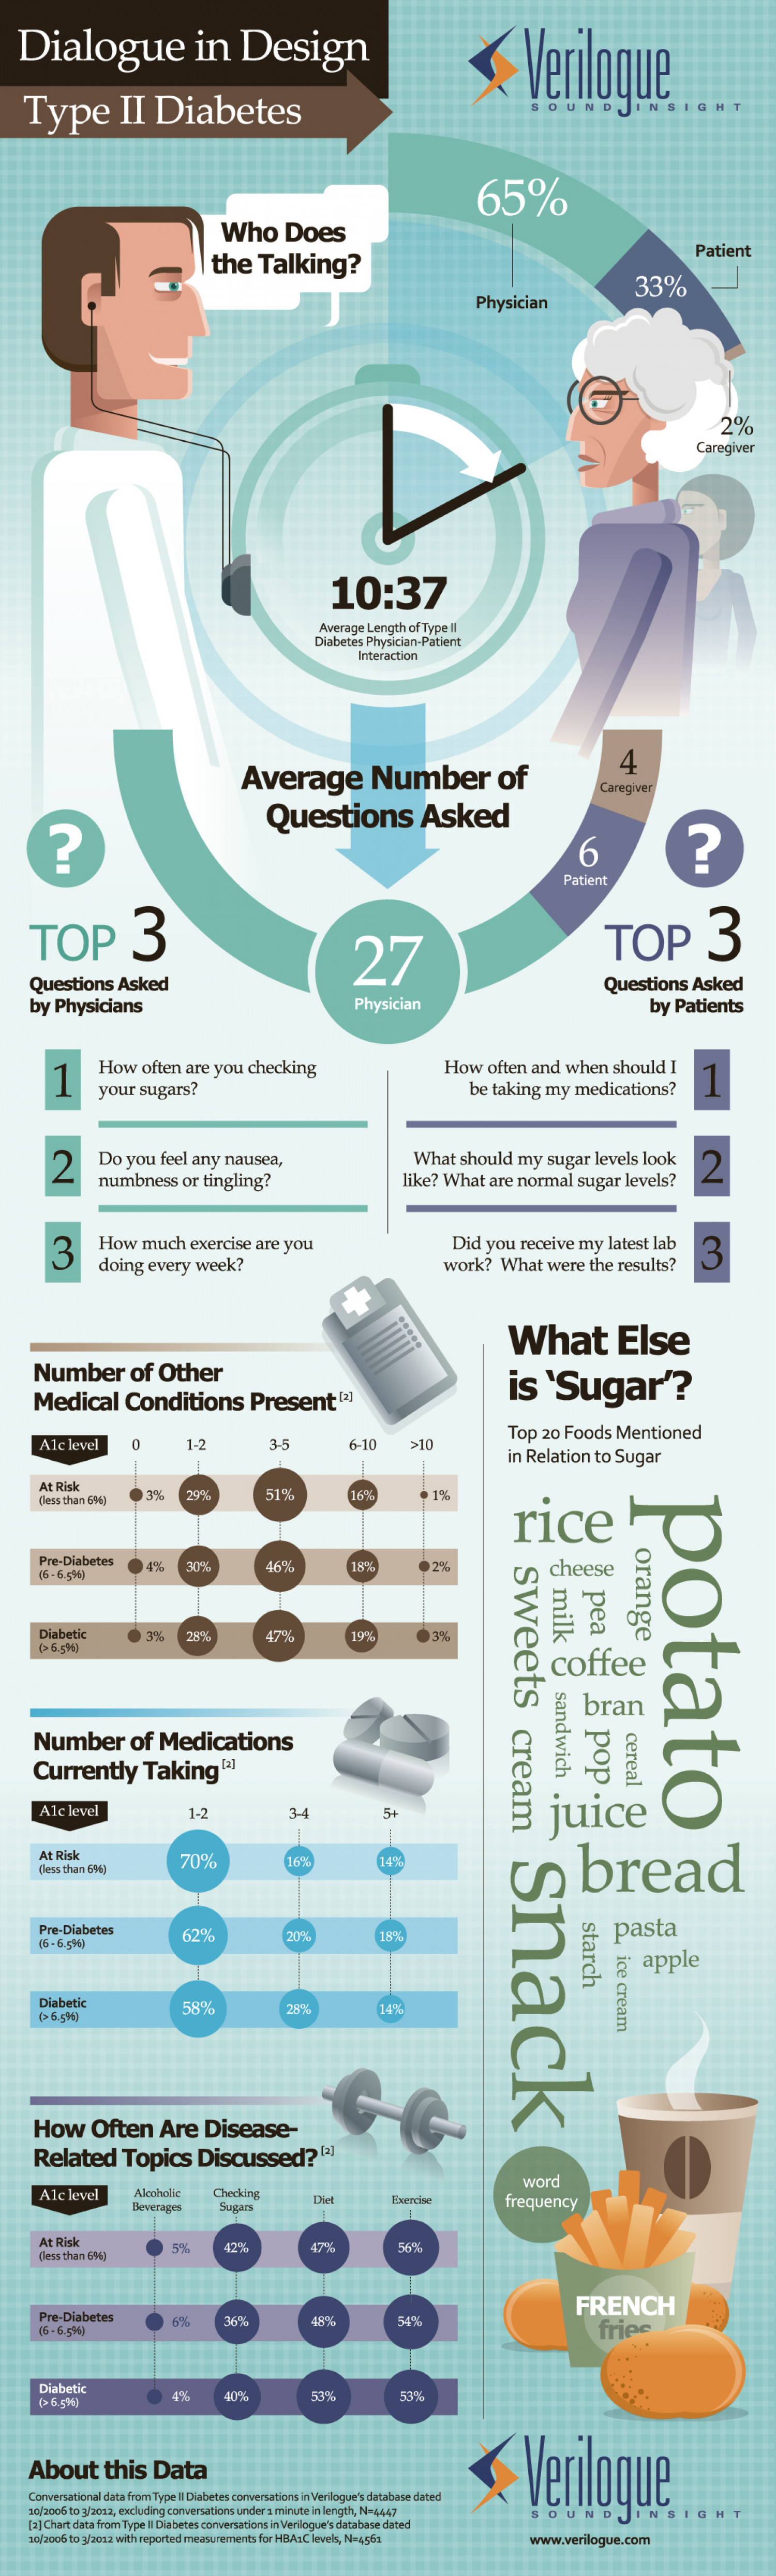 Type II Diabetes Infographic